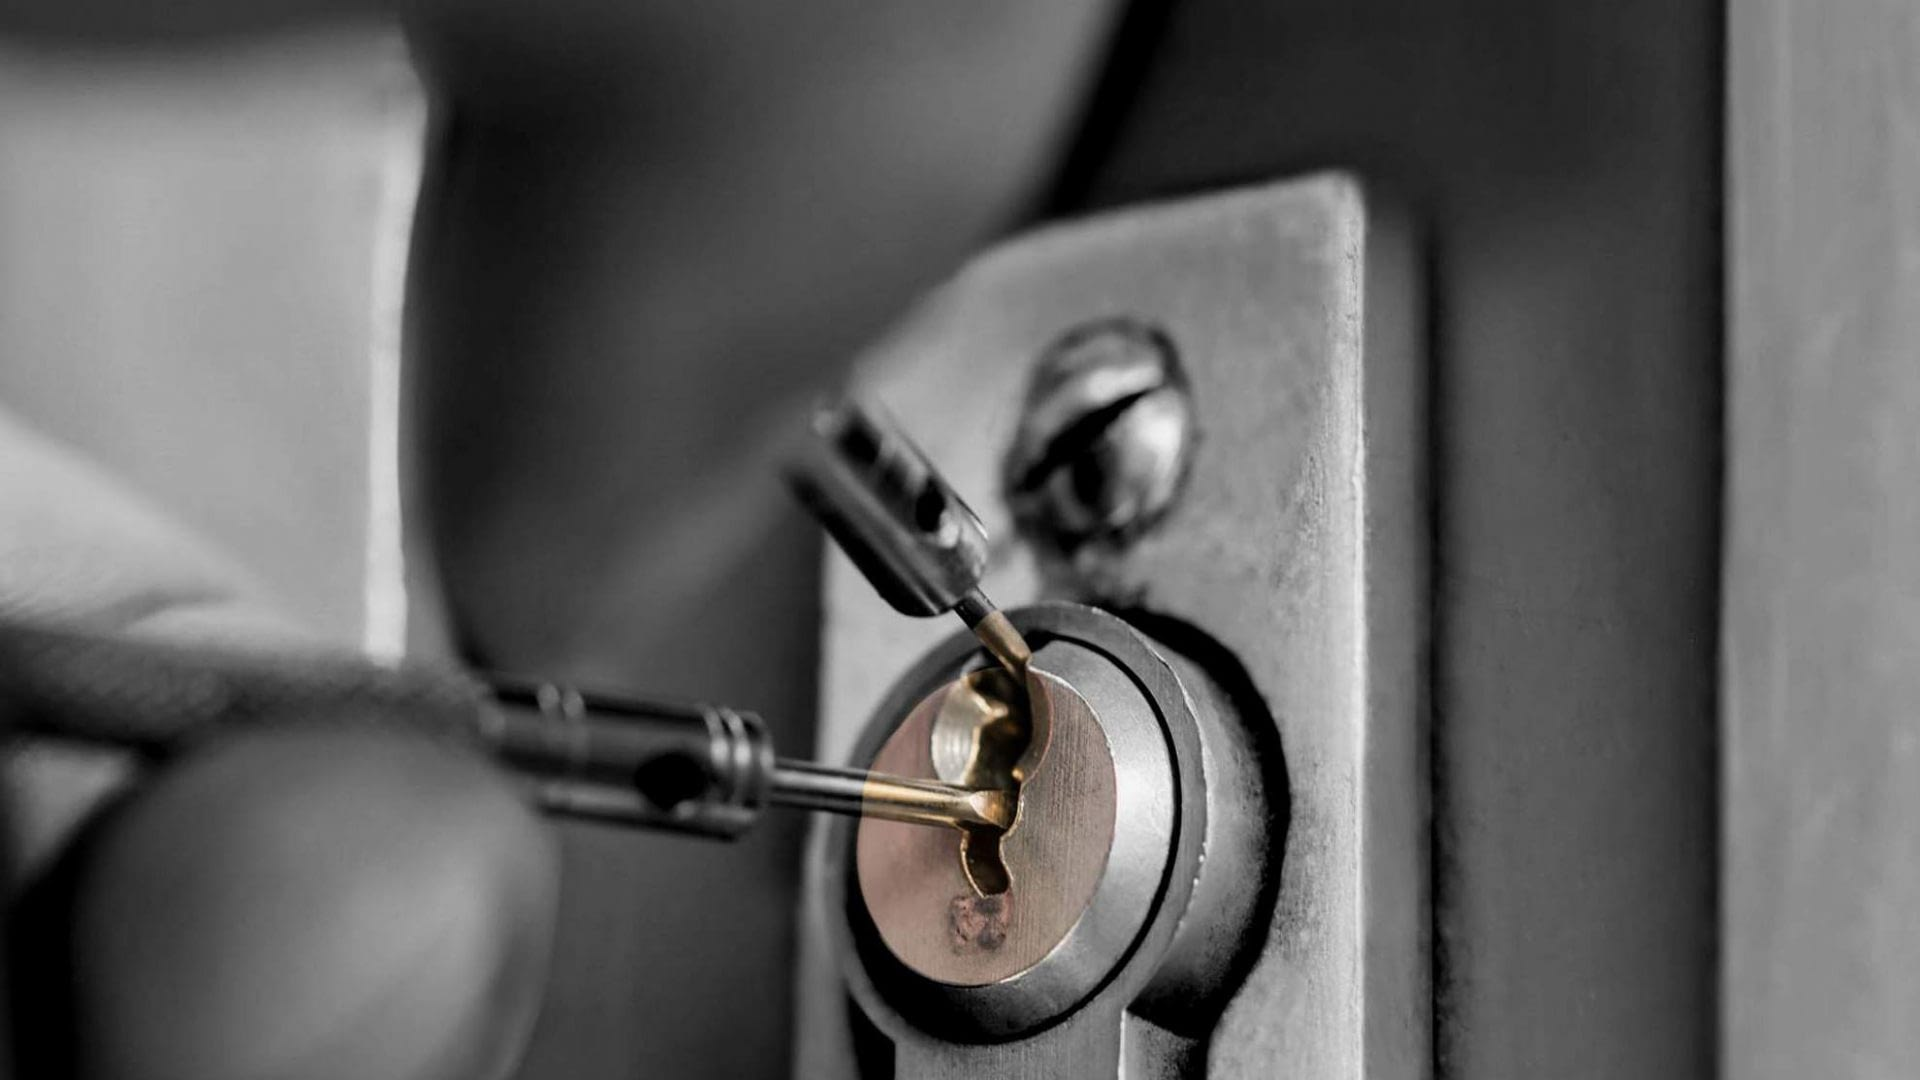 Restore safety with the best service from a car locksmith